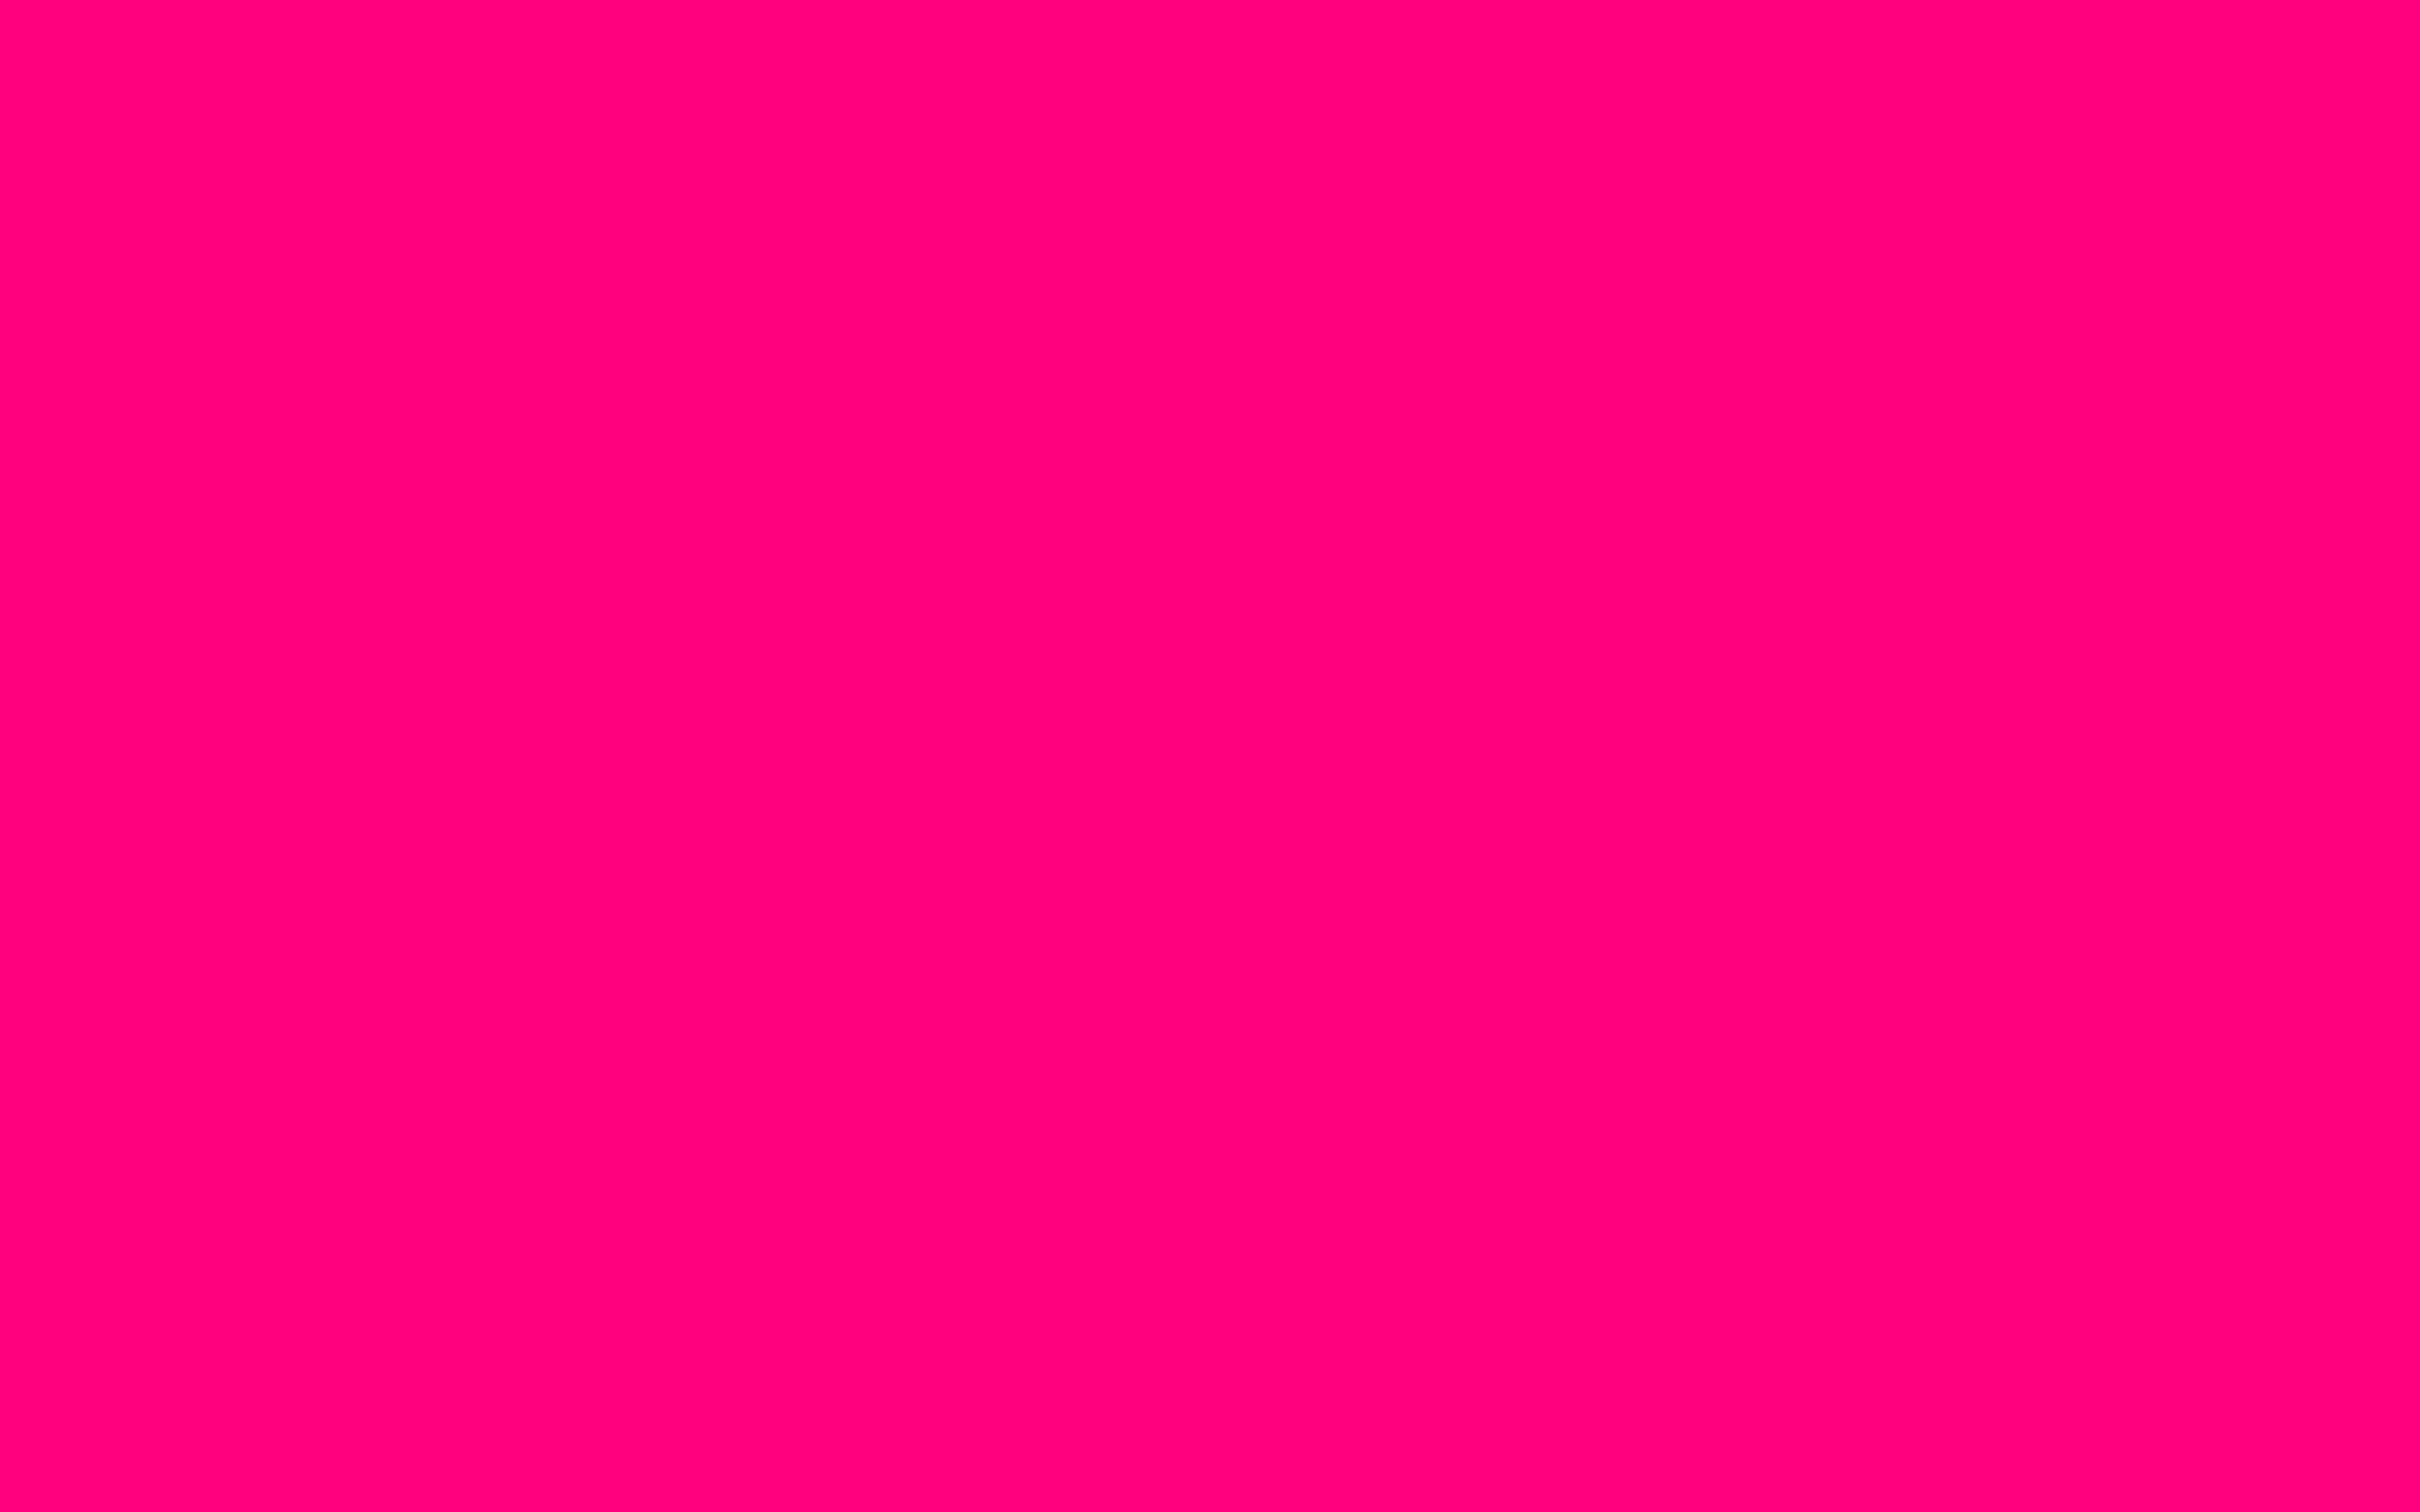 X1800 fluorescent pink solid color 28 images for Bright pink wallpaper uk